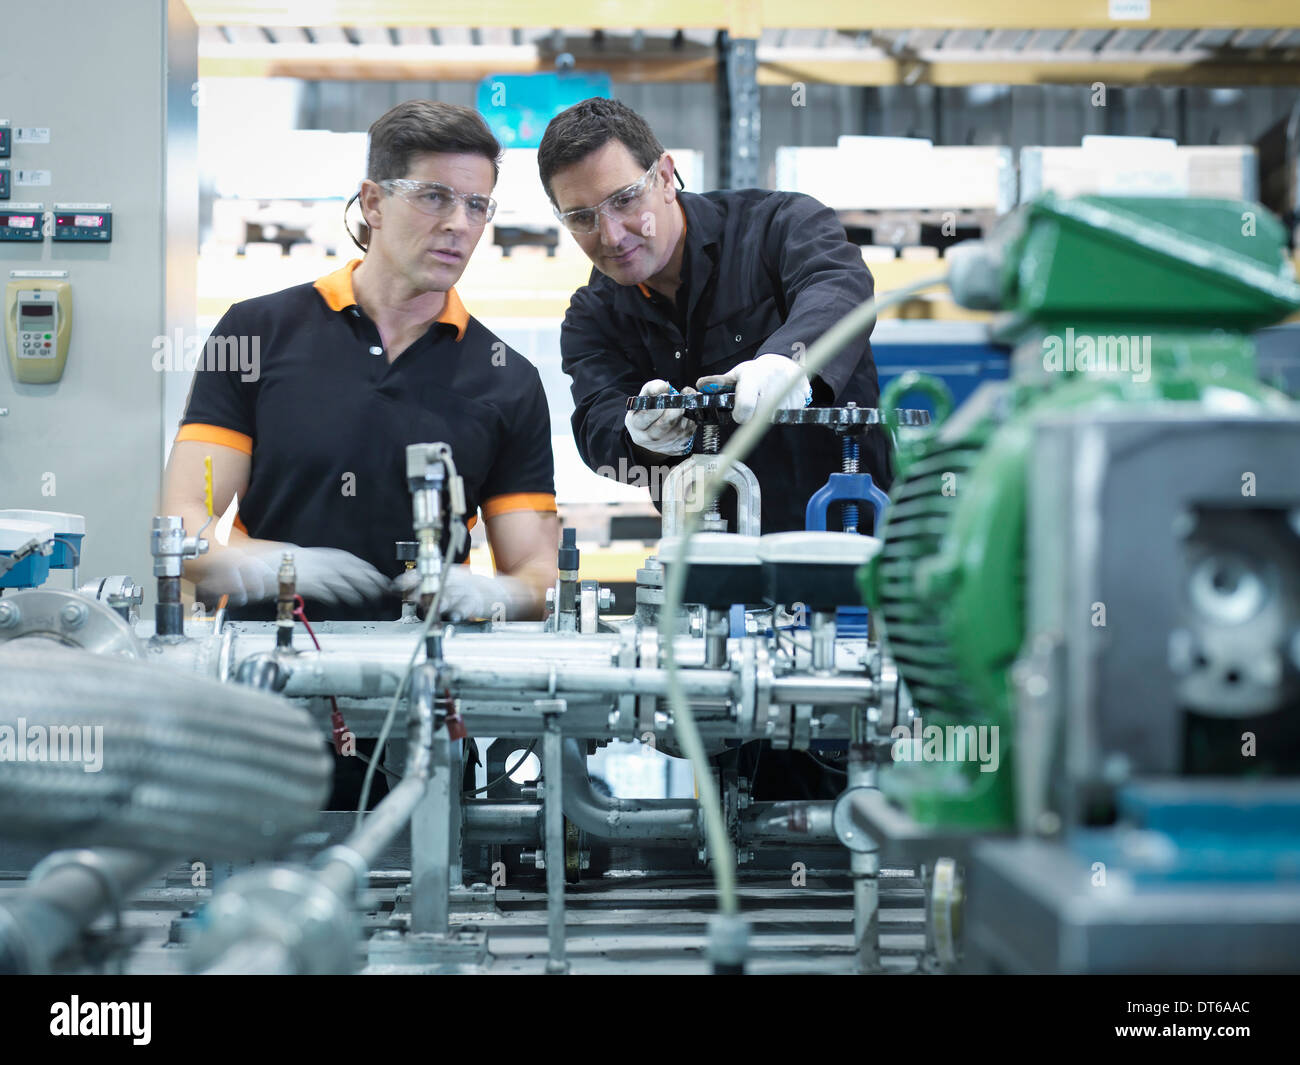 Engineers with industrial pump testing rig in factory - Stock Image